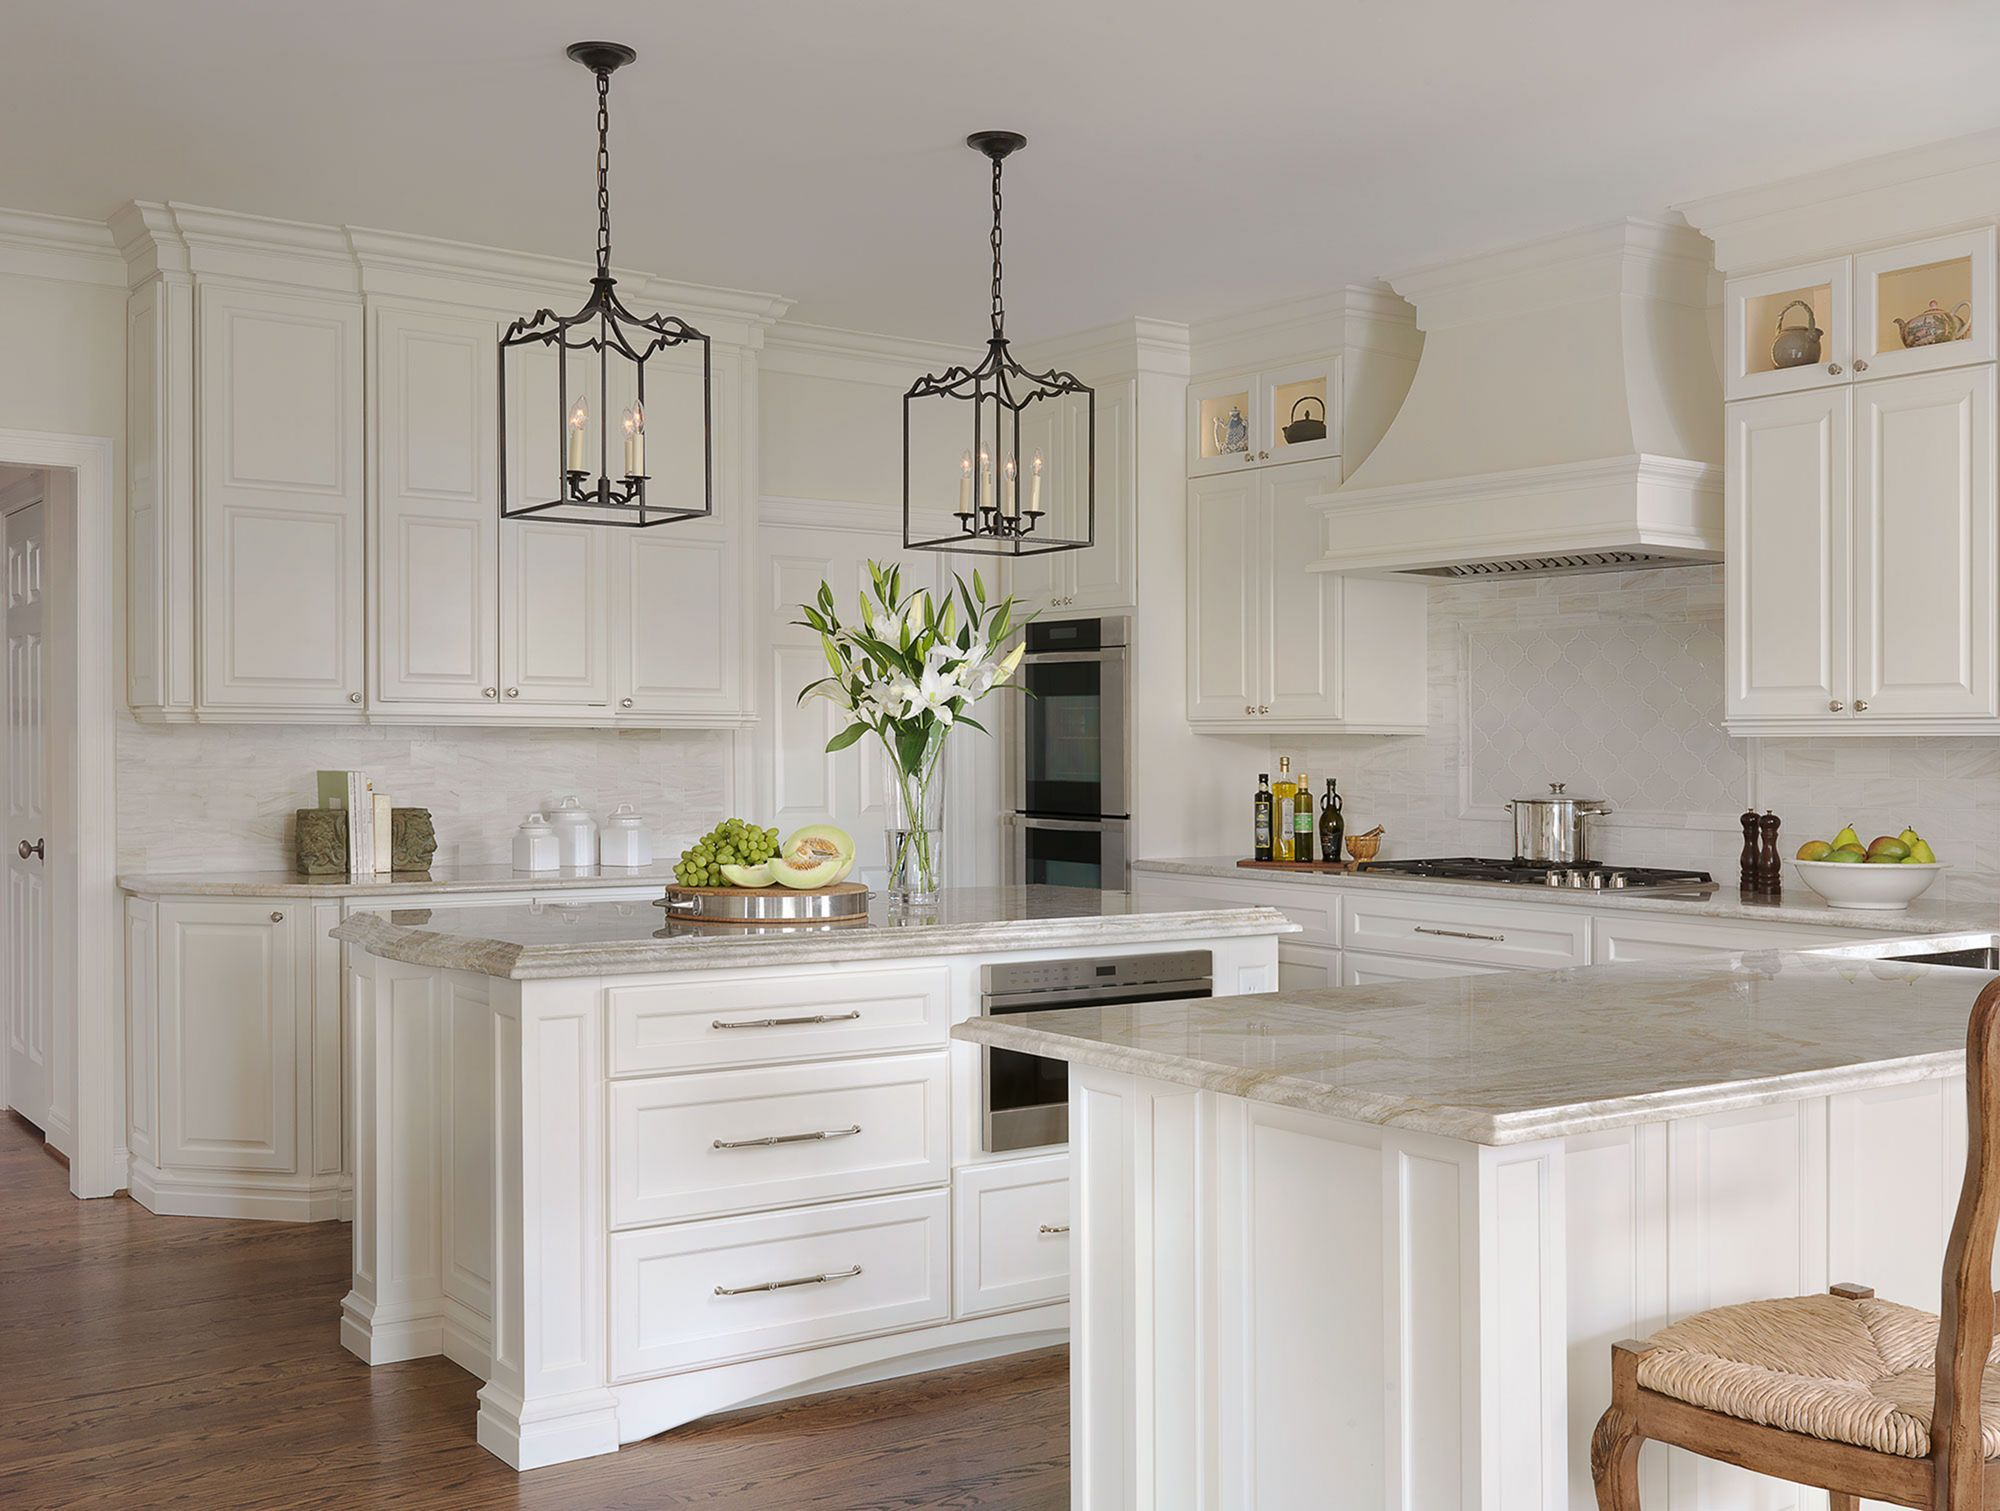 15 awesome classic white kitchen cabinets ideas you have to